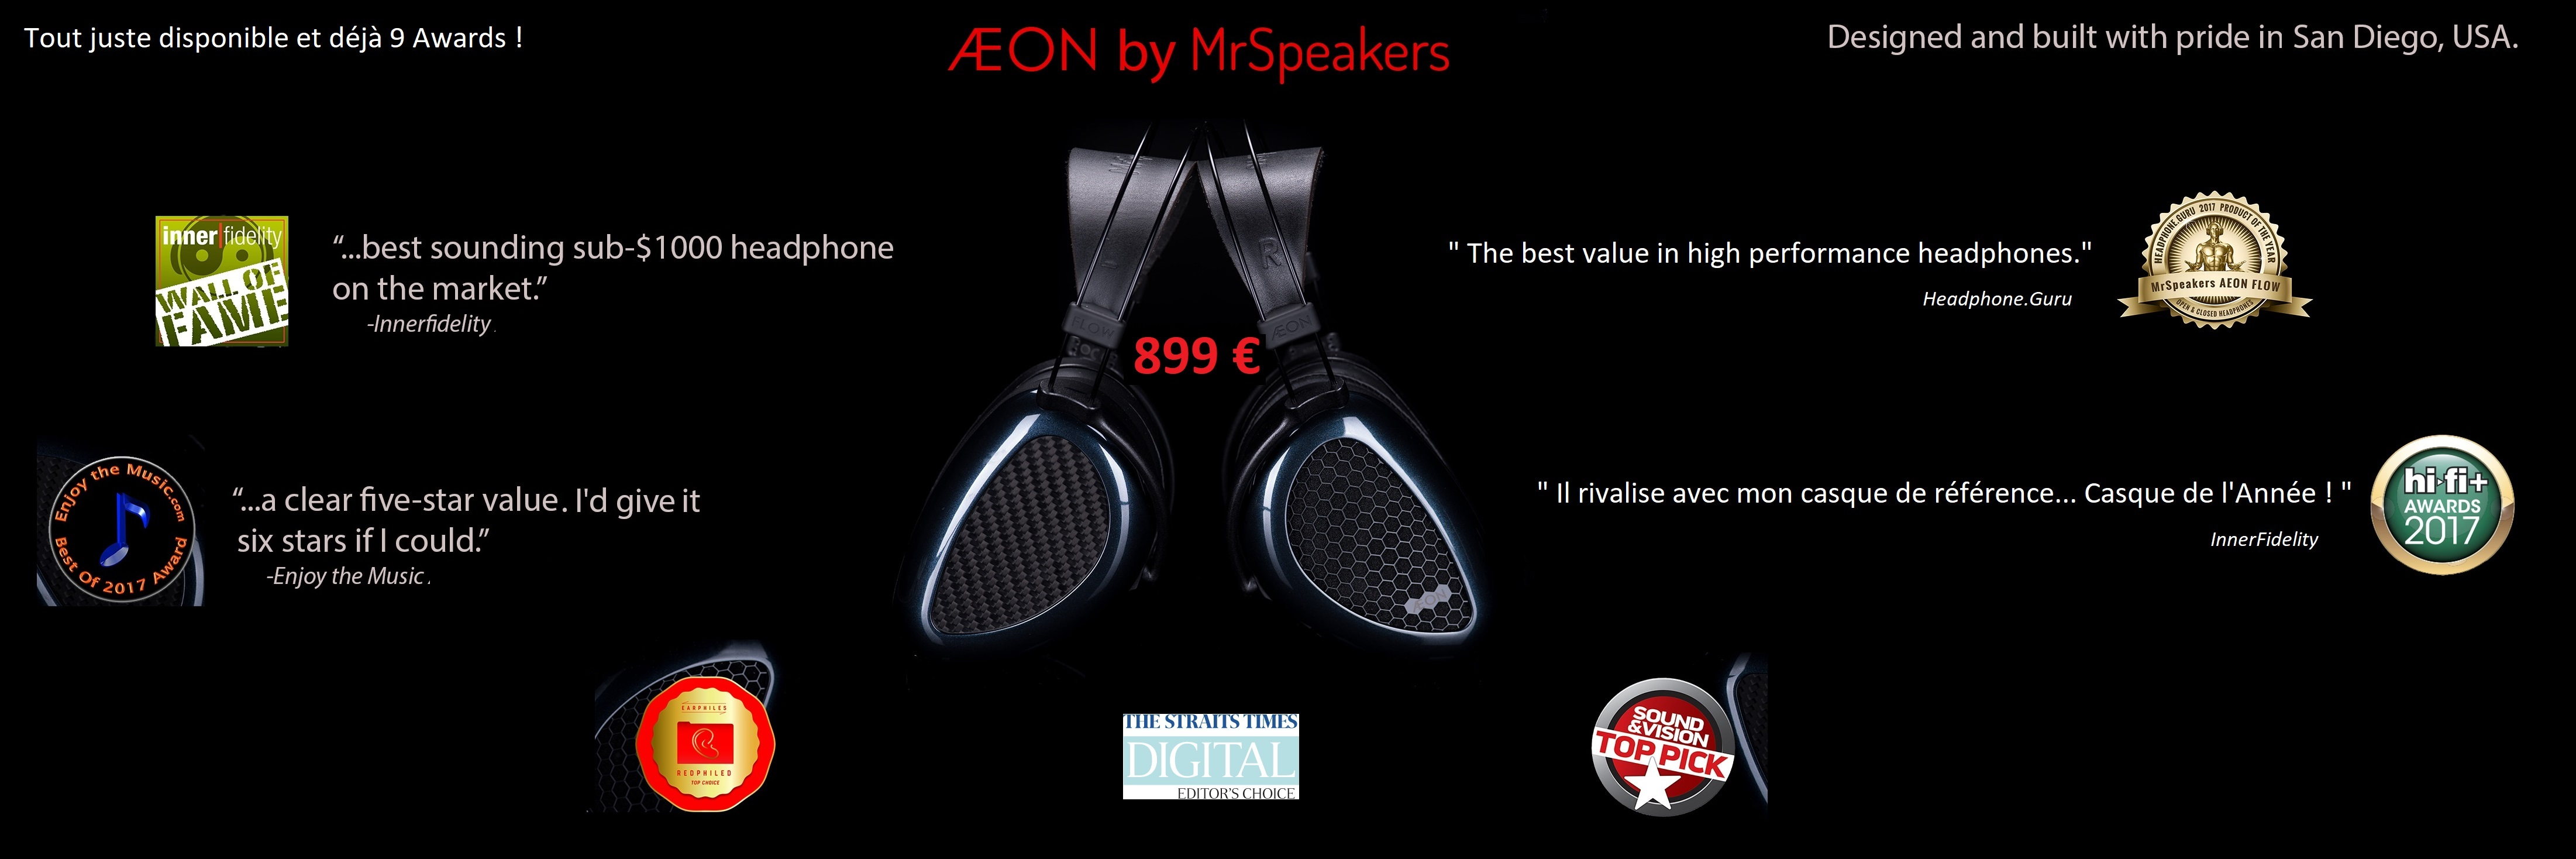 MrSpeakers Aeon Awards2